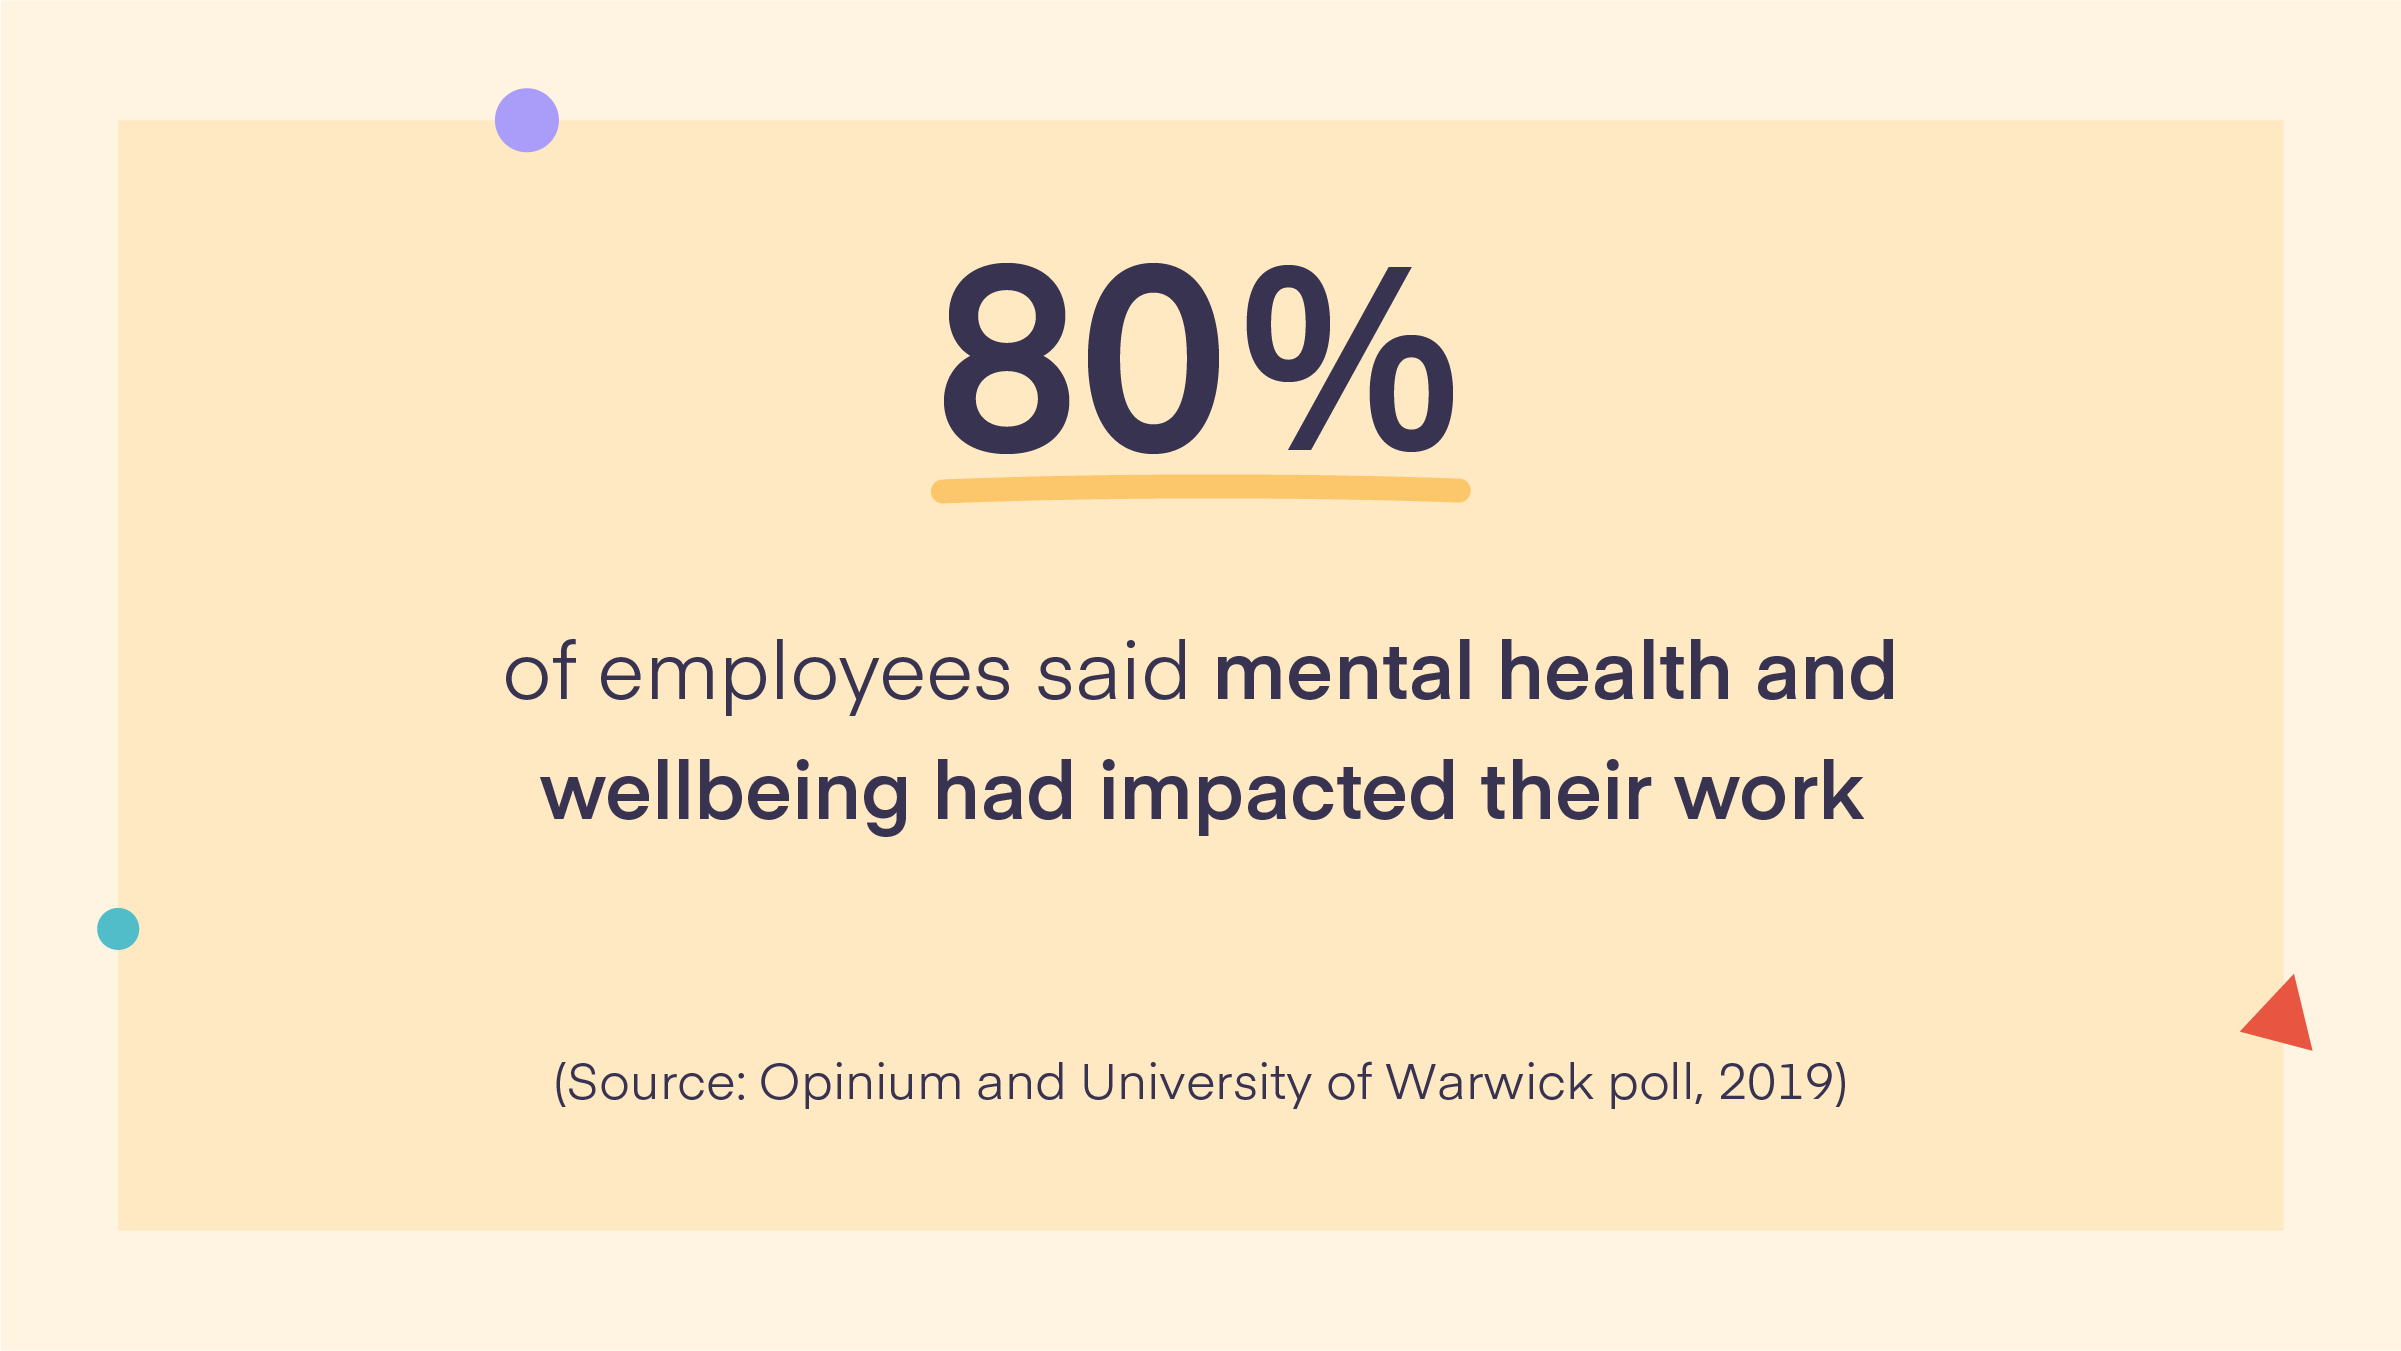 80% of employees said mental health and wellbeing has impacted their work